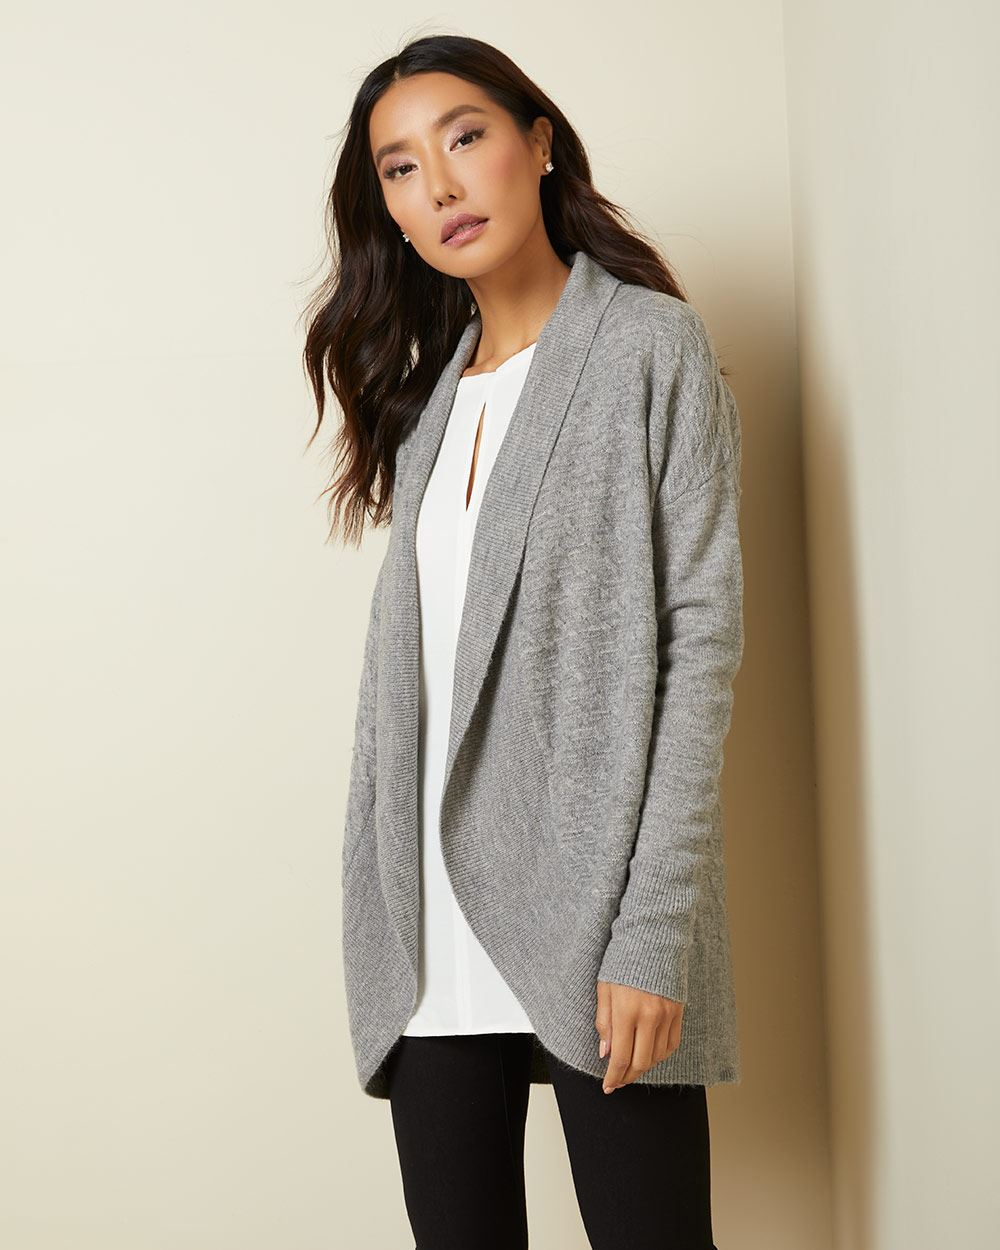 C&G Spongy knit cocoon cardigan